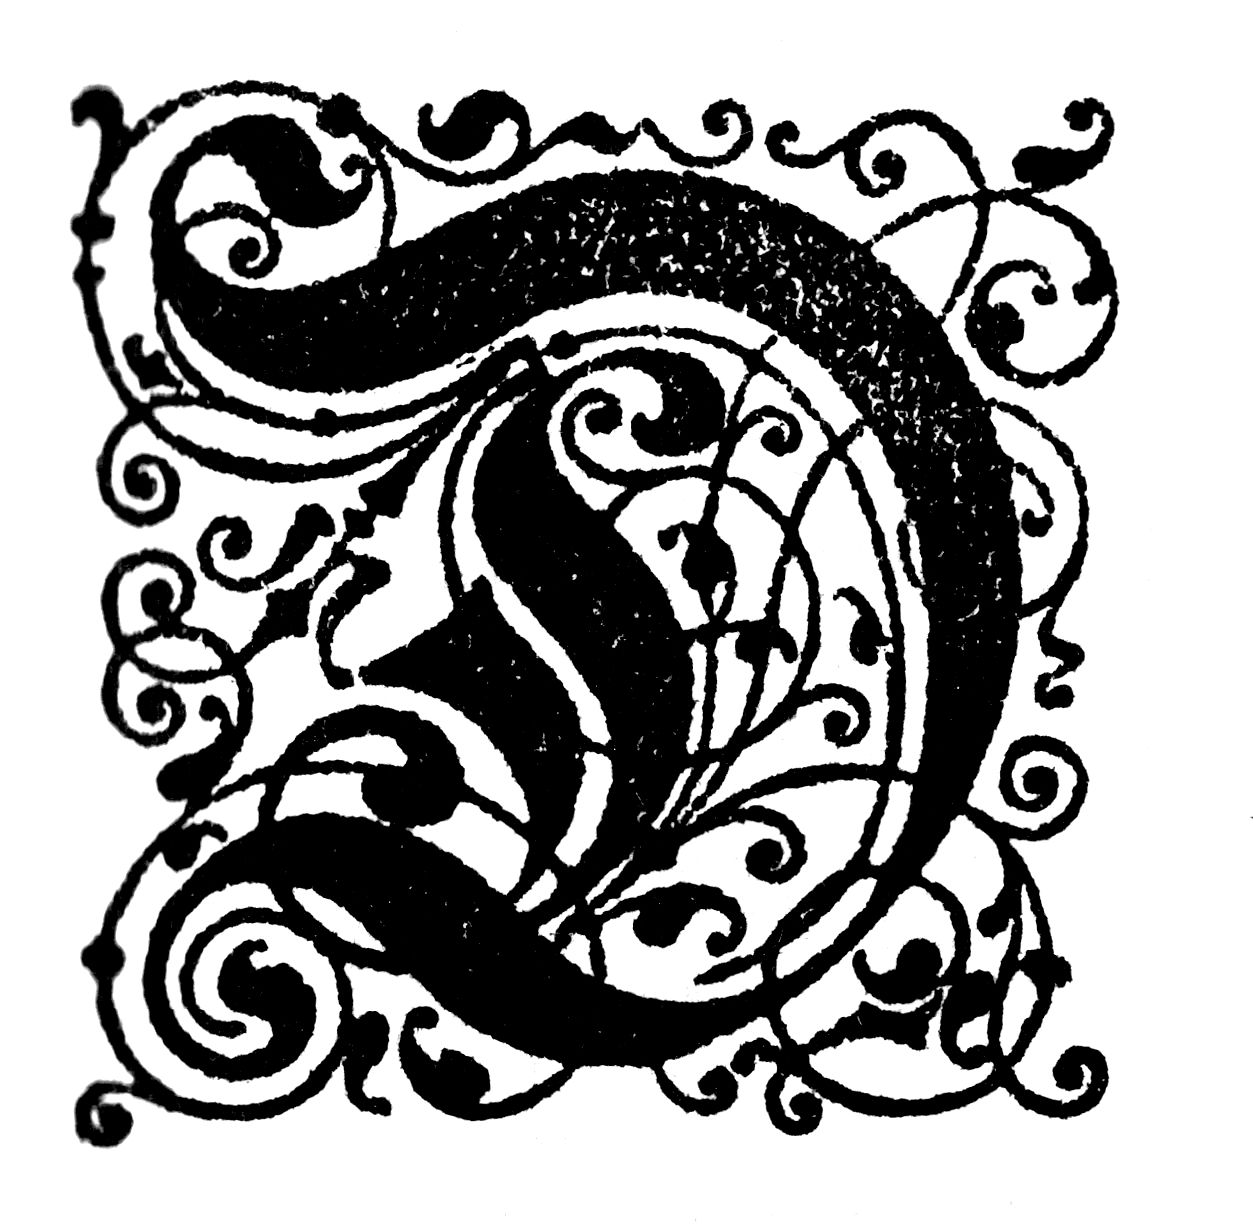 Free Vintage Initial Capital Letter 'D' Calligraphy